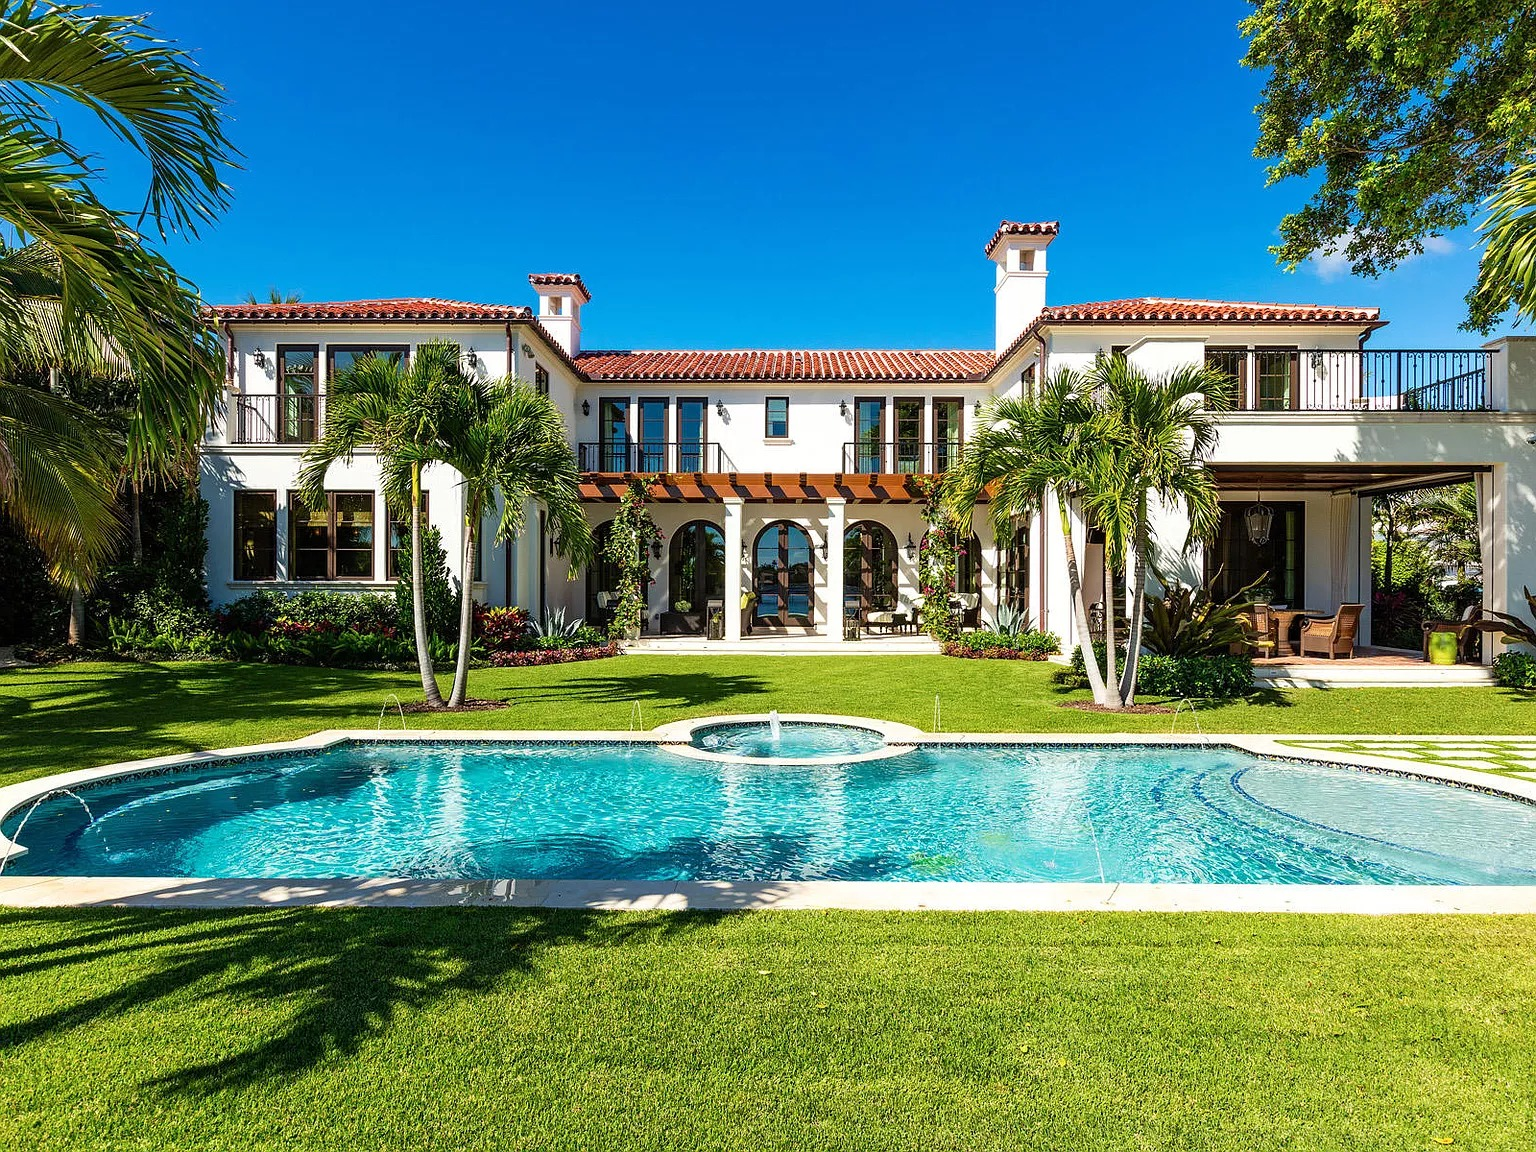 630 Island Dr, Palm Beach, FL 33480 - $20,900,000 home for sale, house images, photos and pics gallery